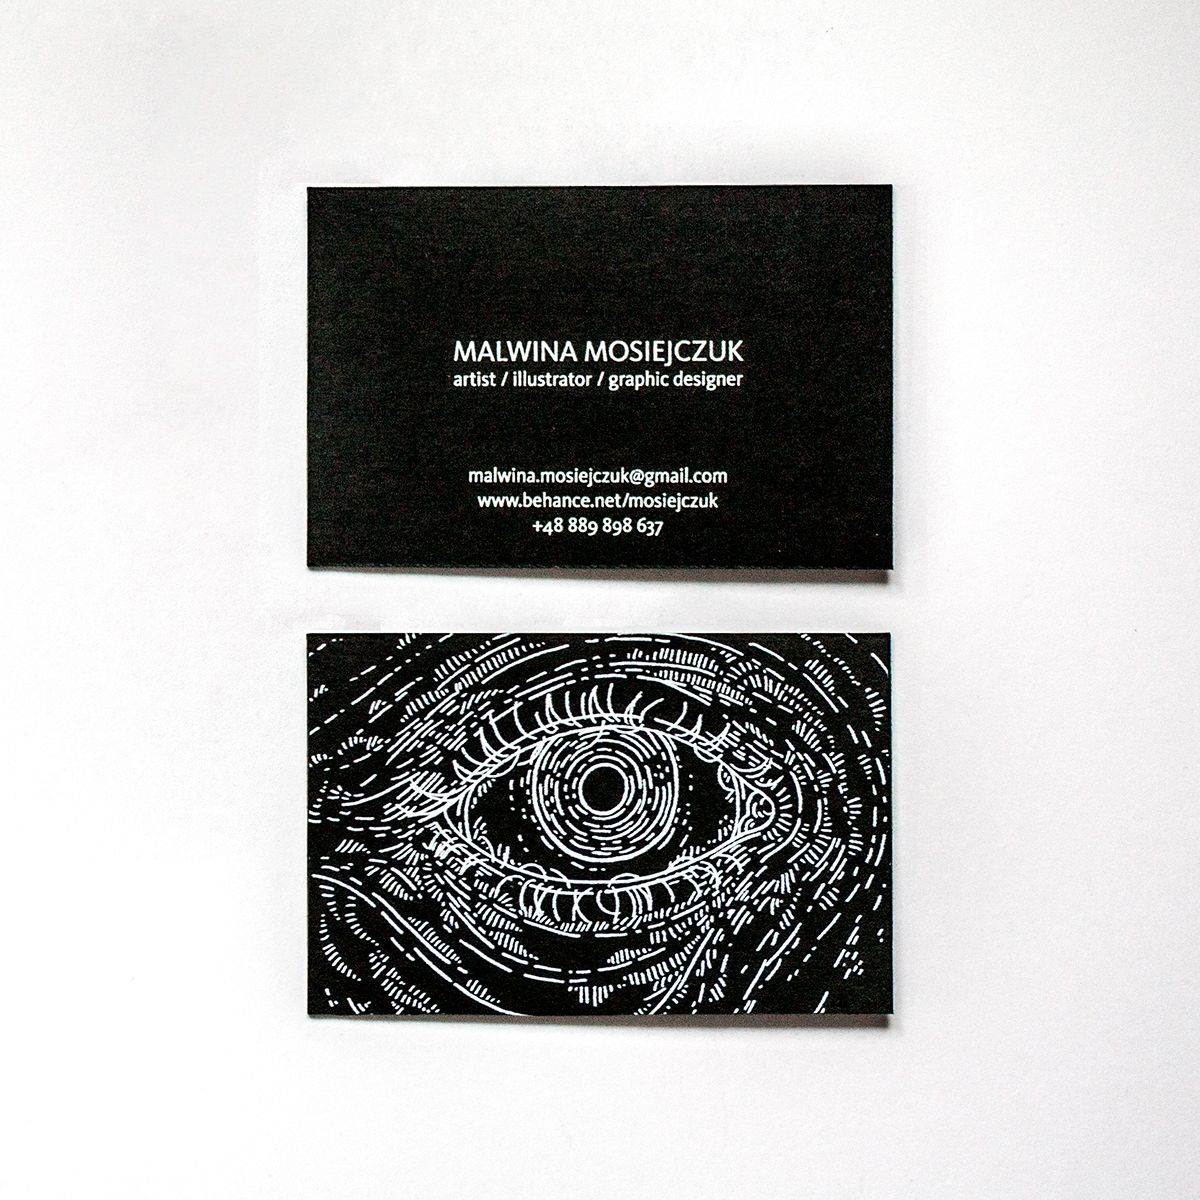 My current business card. I like the symbol of eye and it